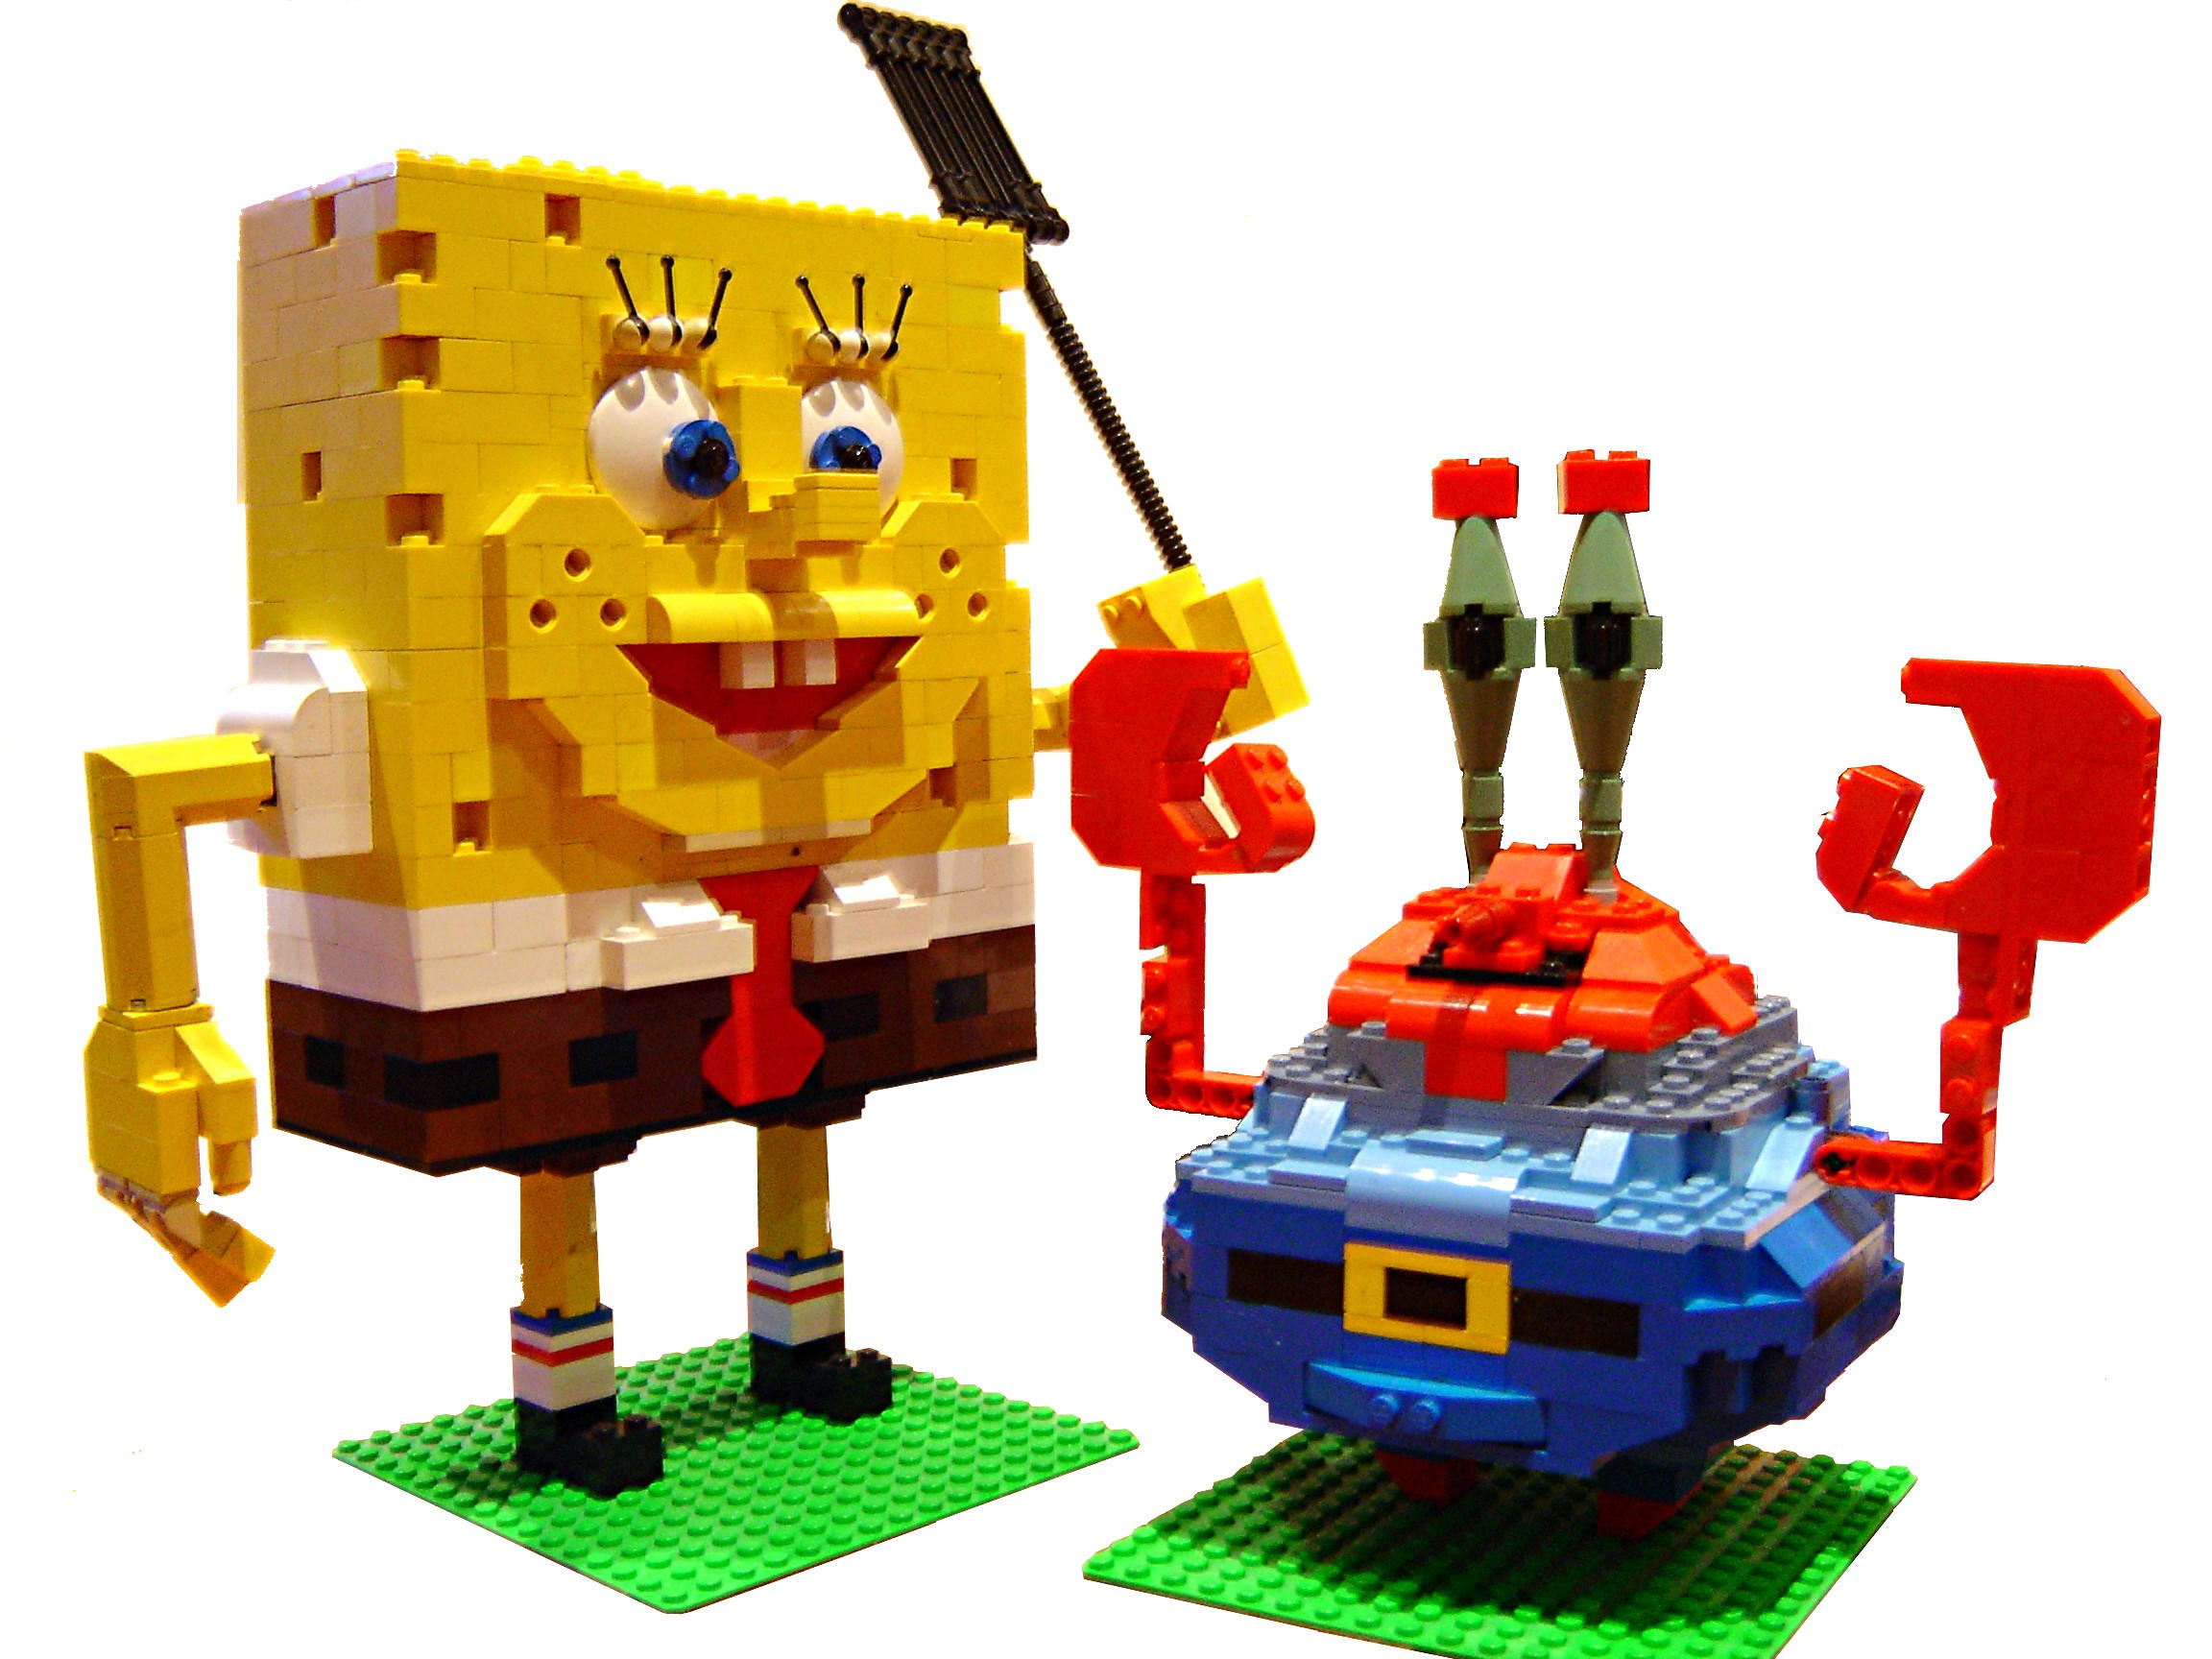 spongebob squarepants by oicurmt1 on deviantart